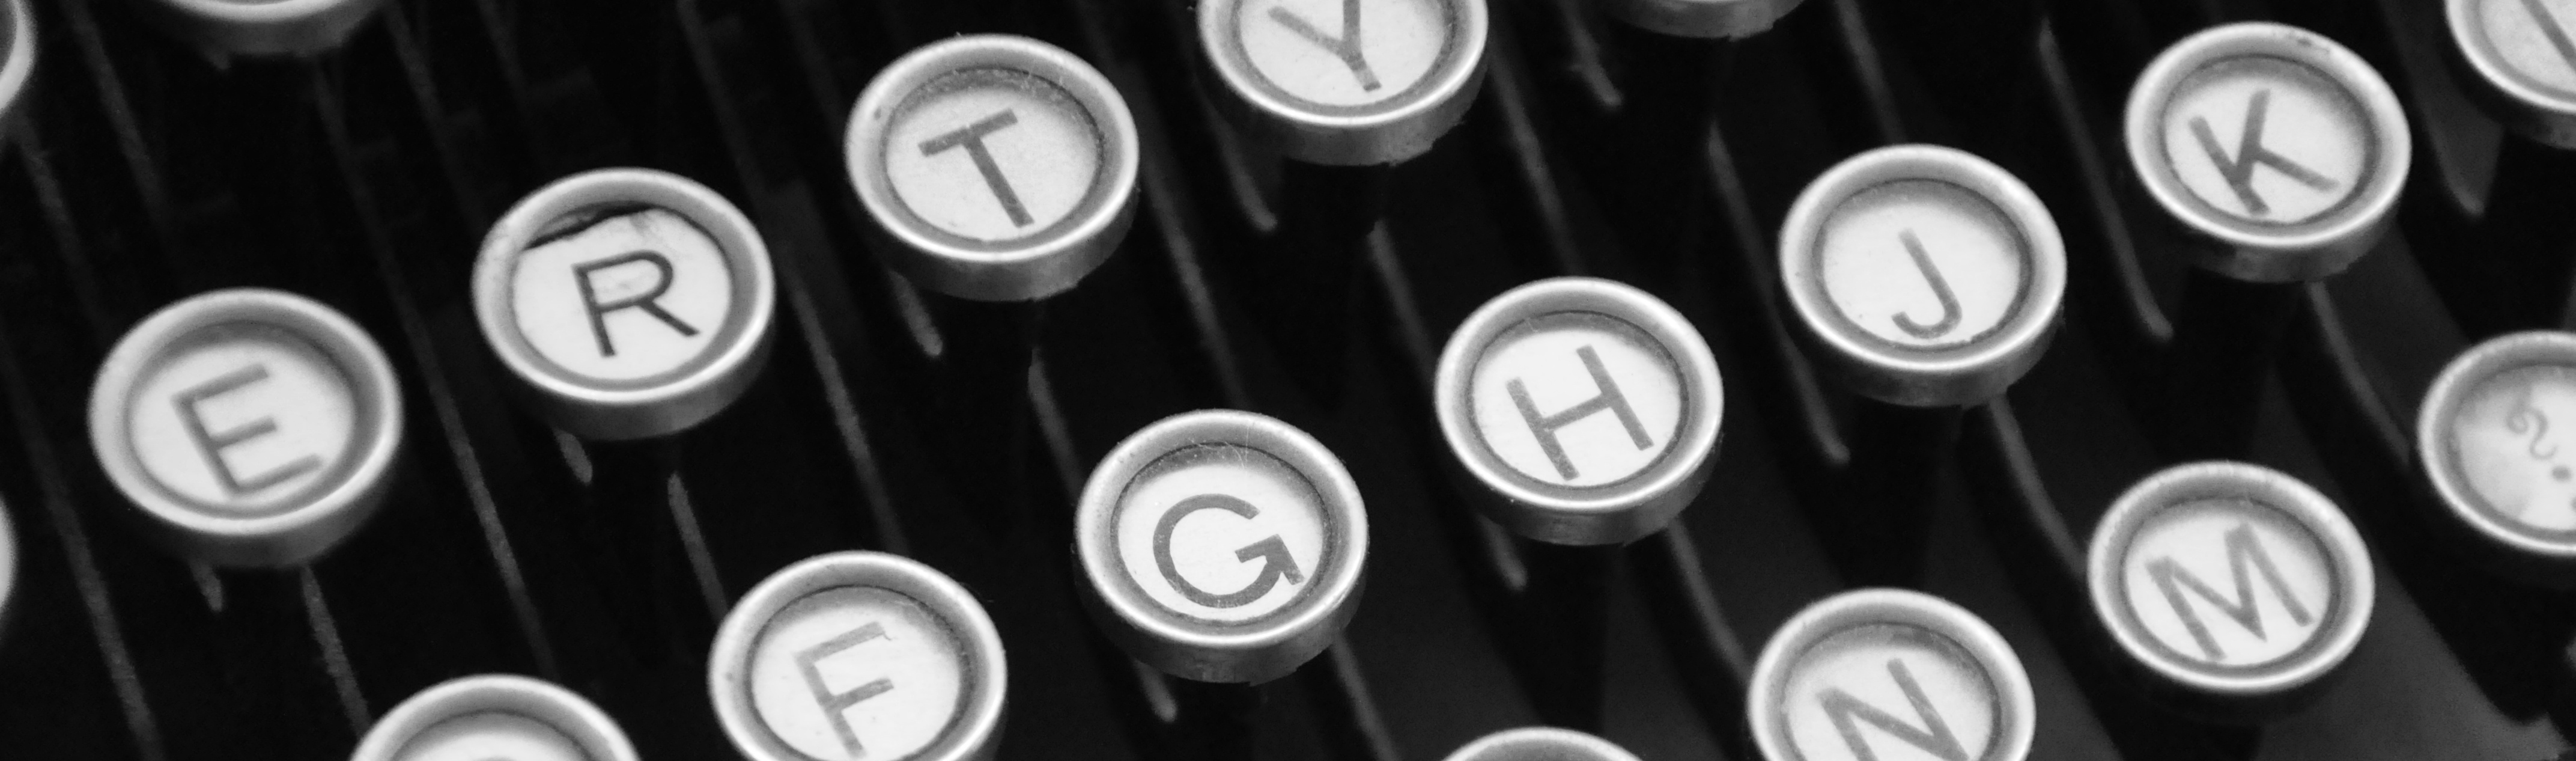 typewriter header